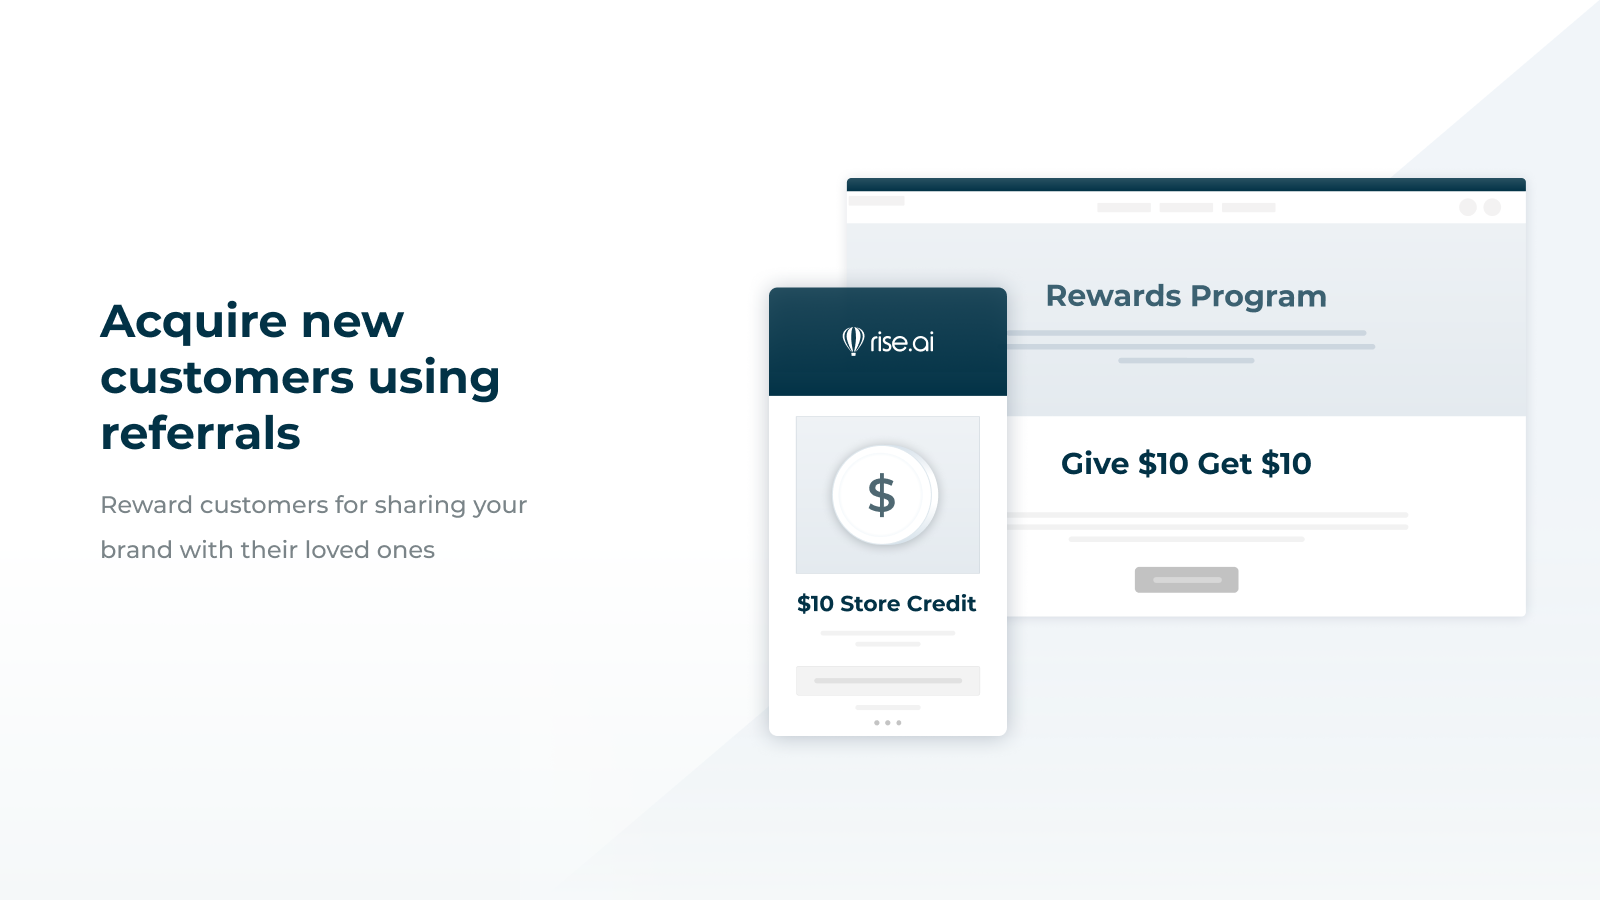 Acquire new customers using referrals